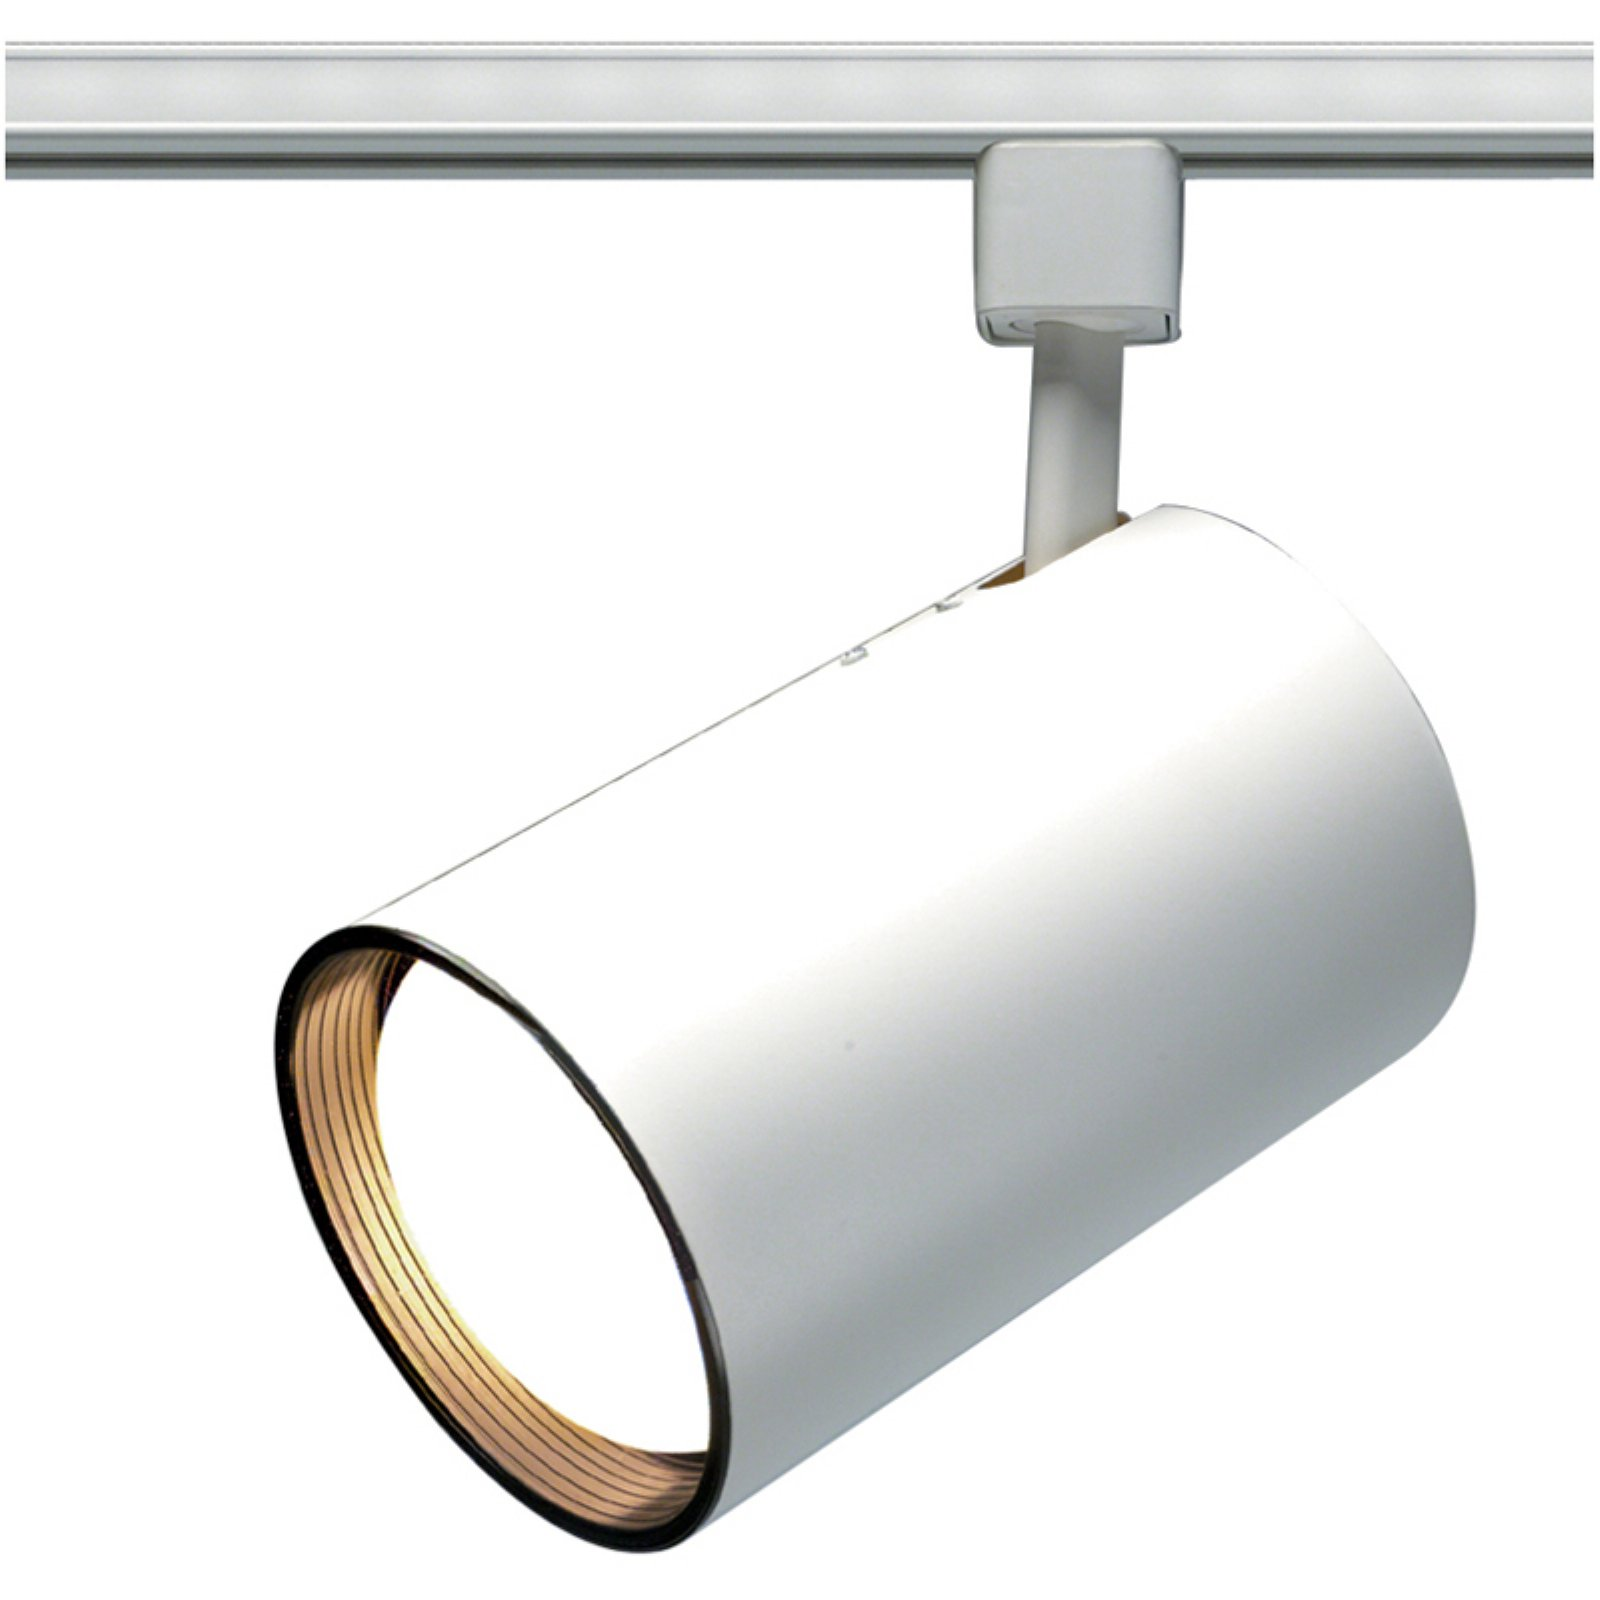 Nuvo TH Straight Track Light Head by Nuvo Lighting